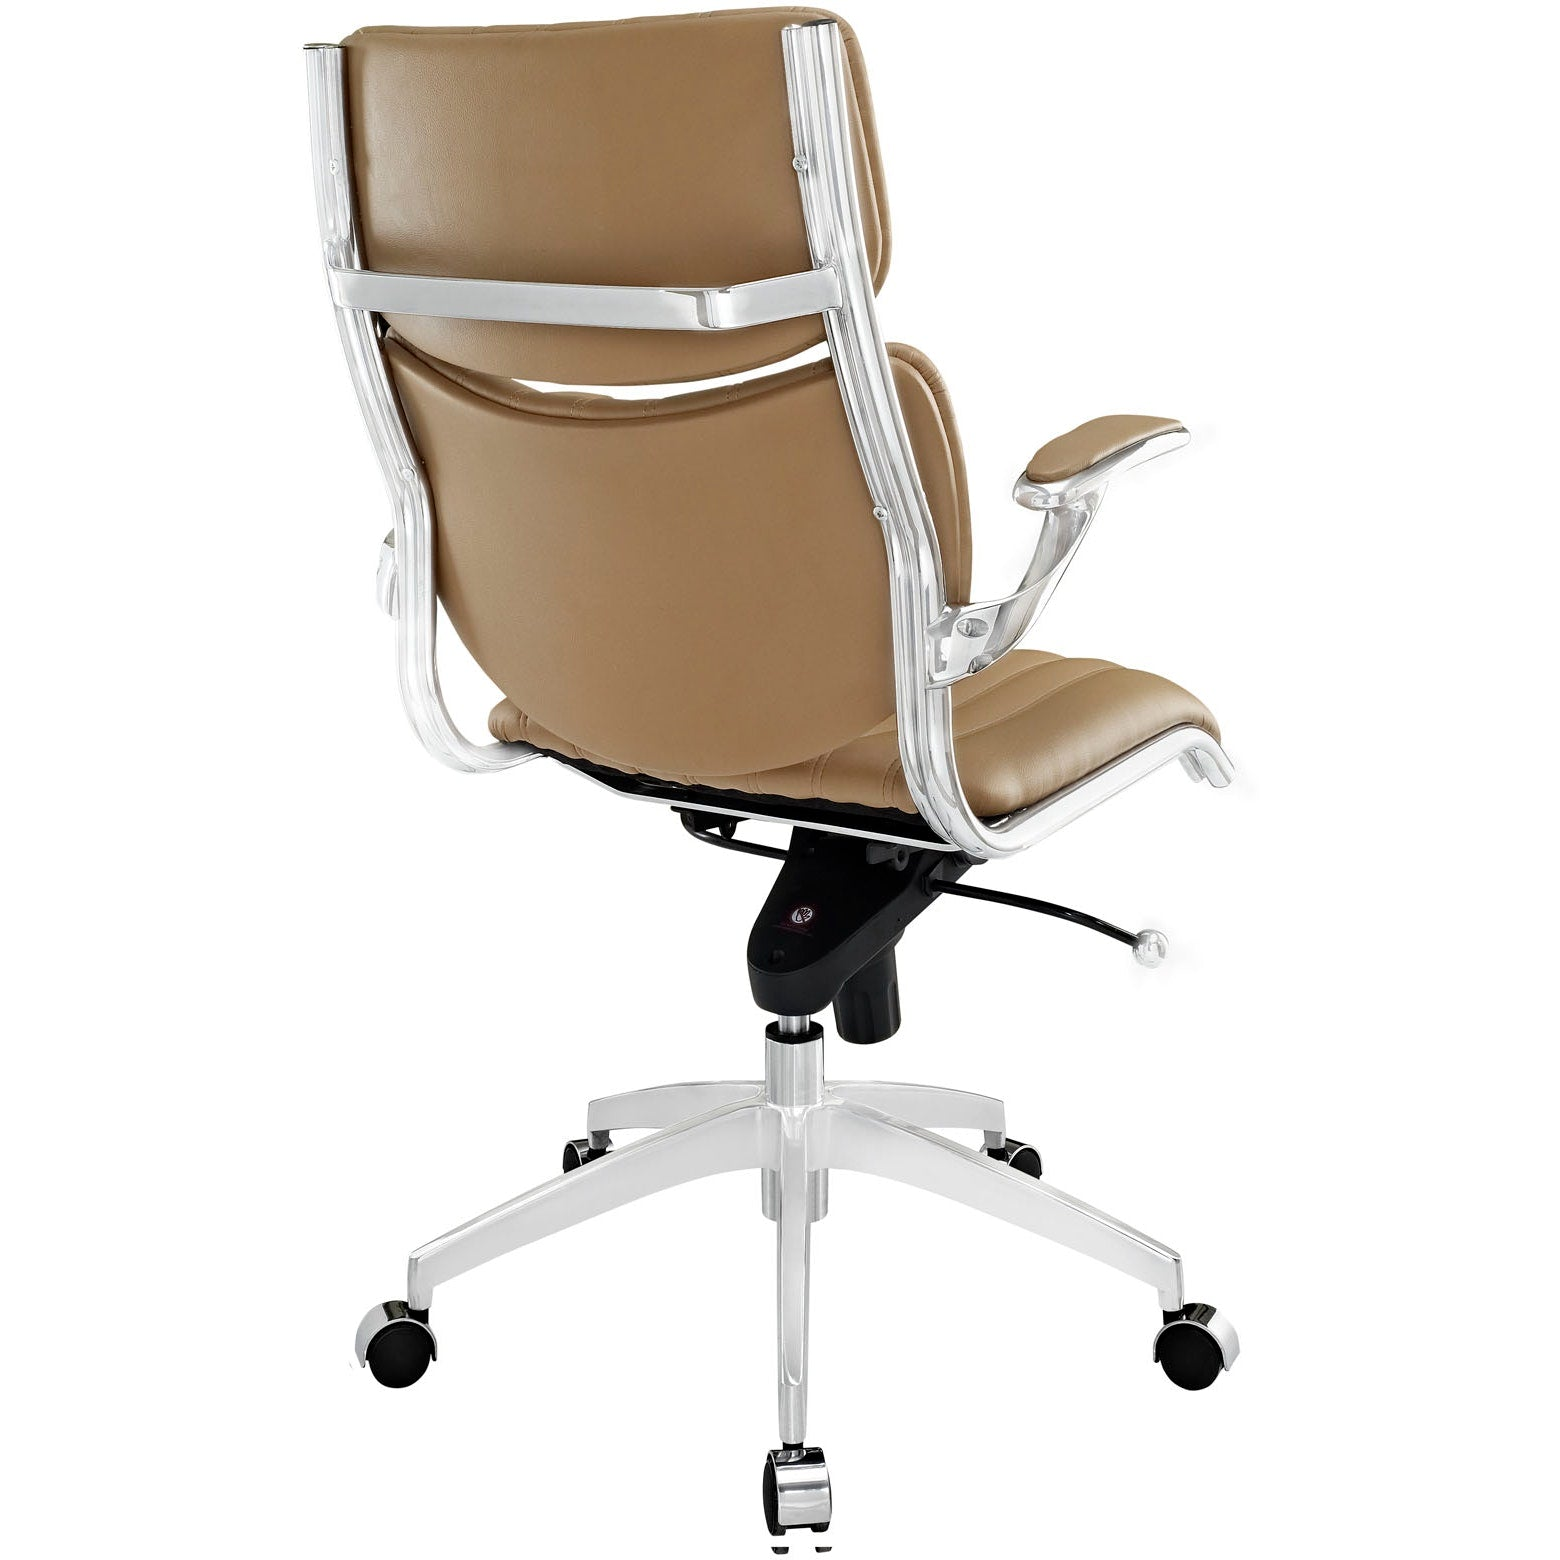 Escape Mid Back Office Chair - Tan